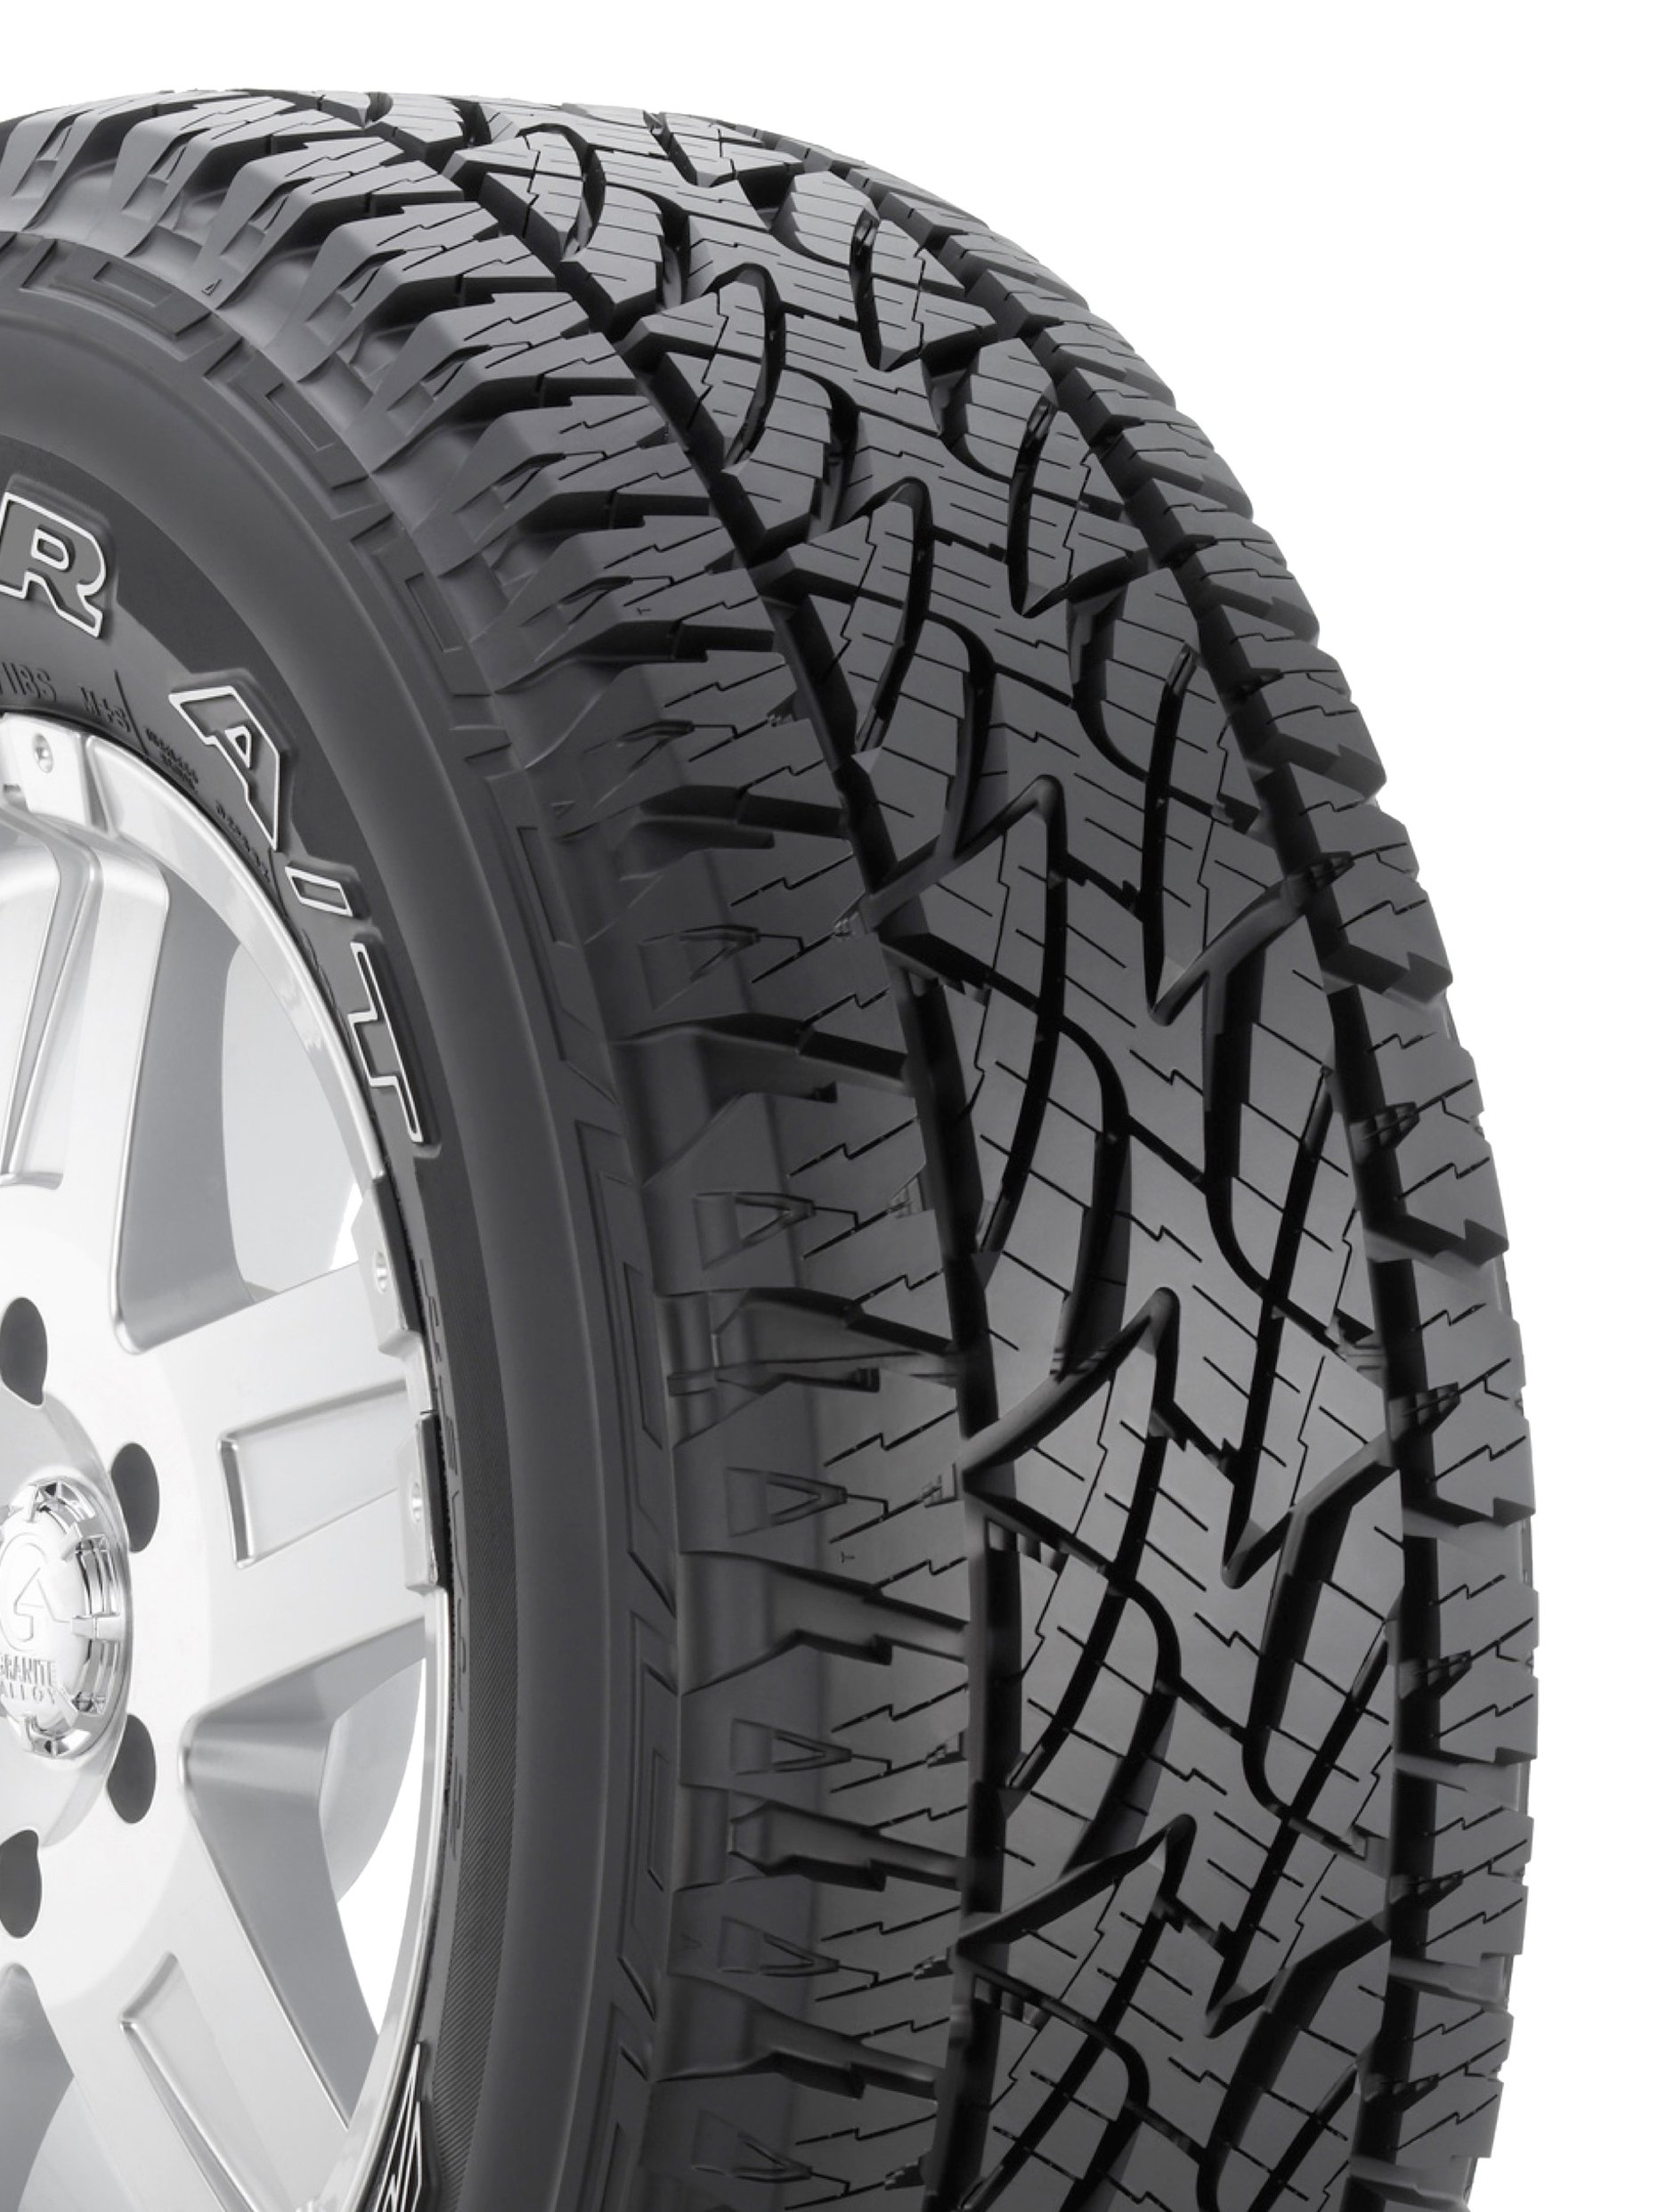 Bridgestone Dueler A/T REVO 2 All-Season Radial Tire - 275/65R18 114T by Bridgestone (Image #1)